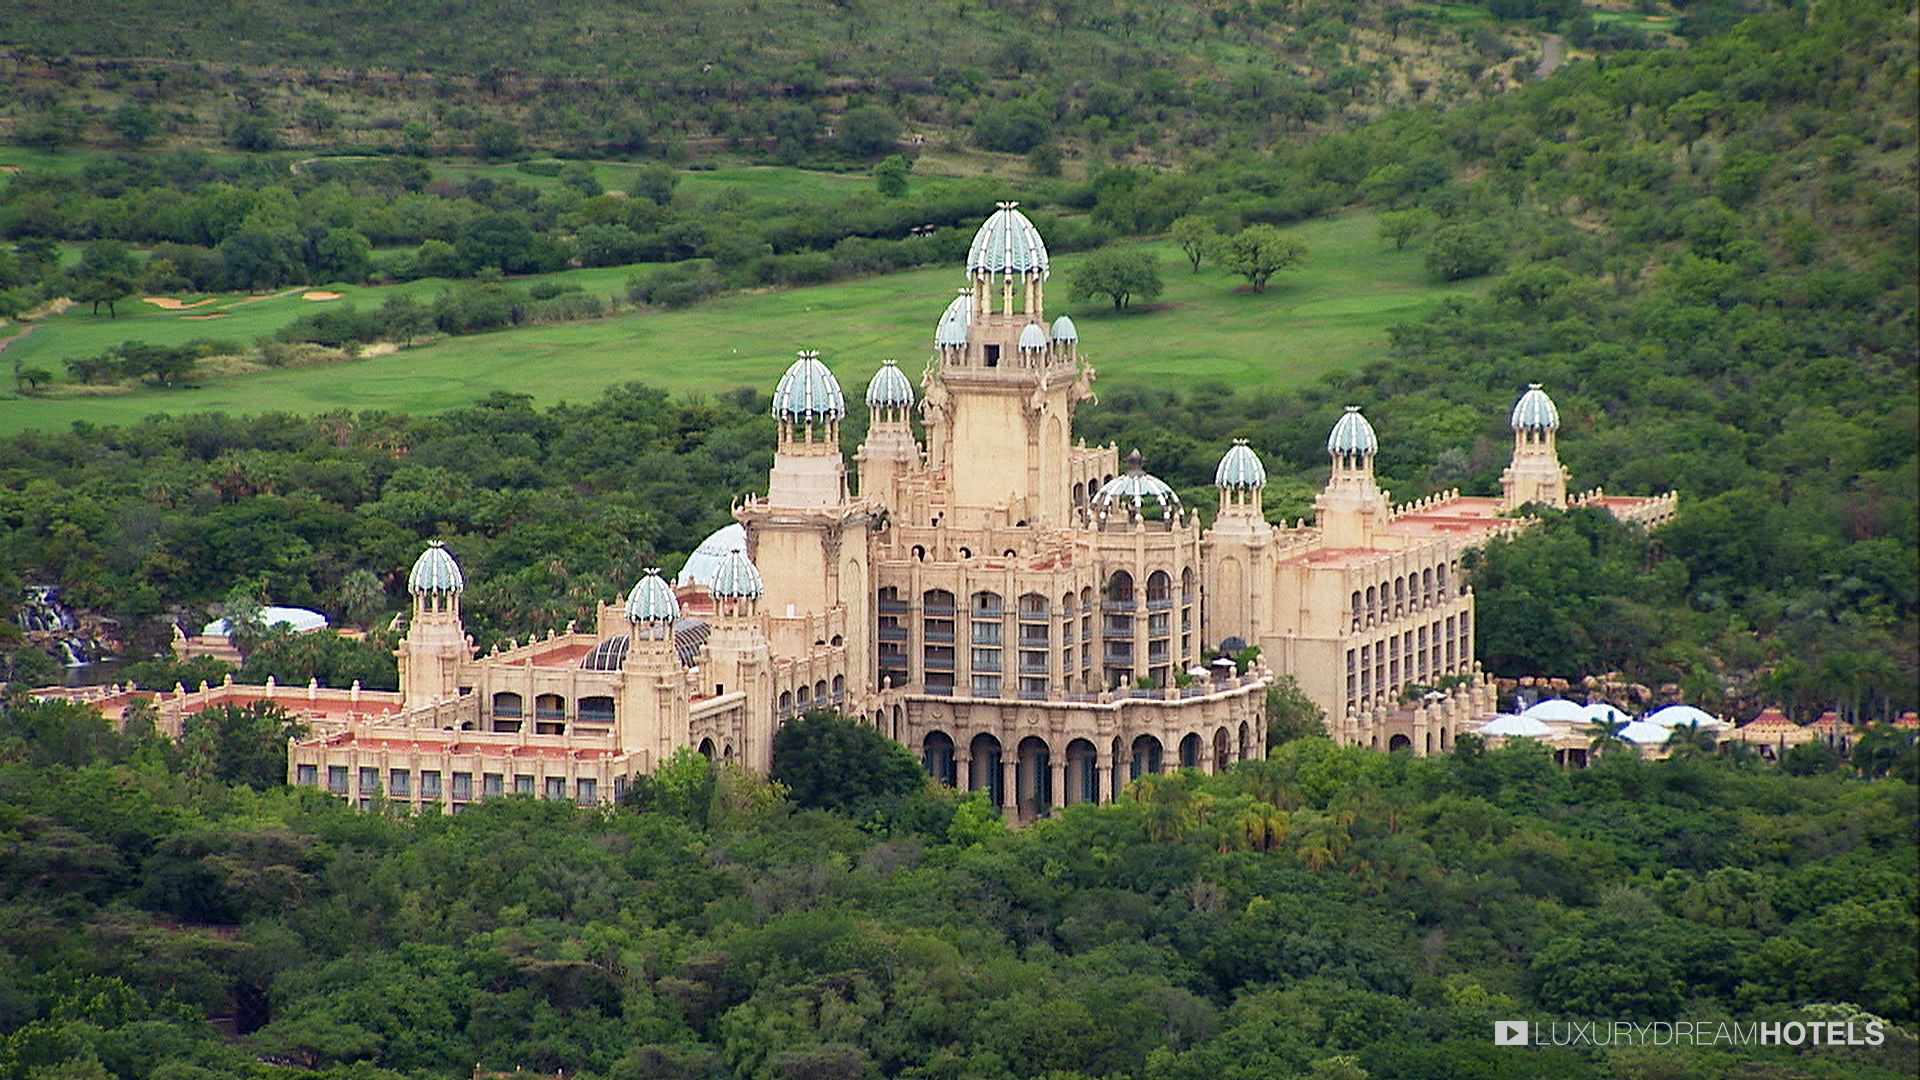 The Palace Of The Lost City >> Luxury Hotel The Palace Of The Lost City At Sun City Sun City